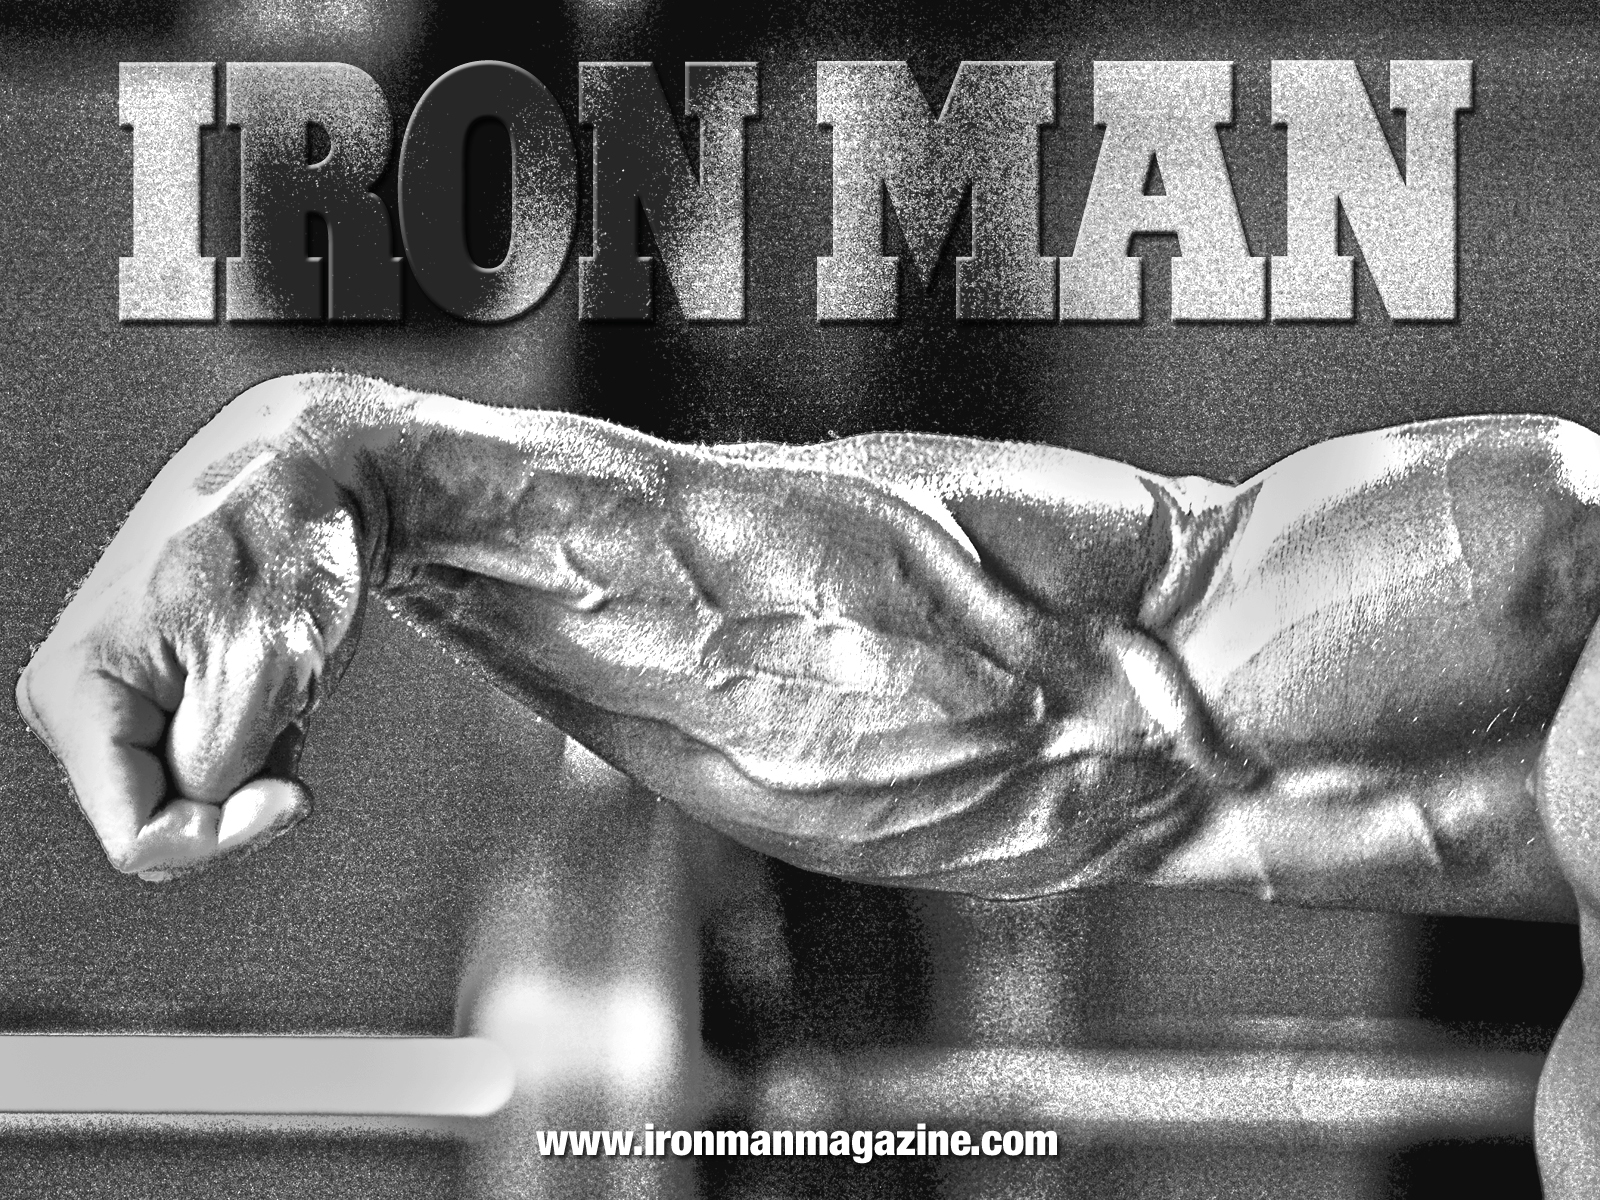 Jay Cutler Hd Wallpaper Iron Man Wallpaper Iron Man Magazine